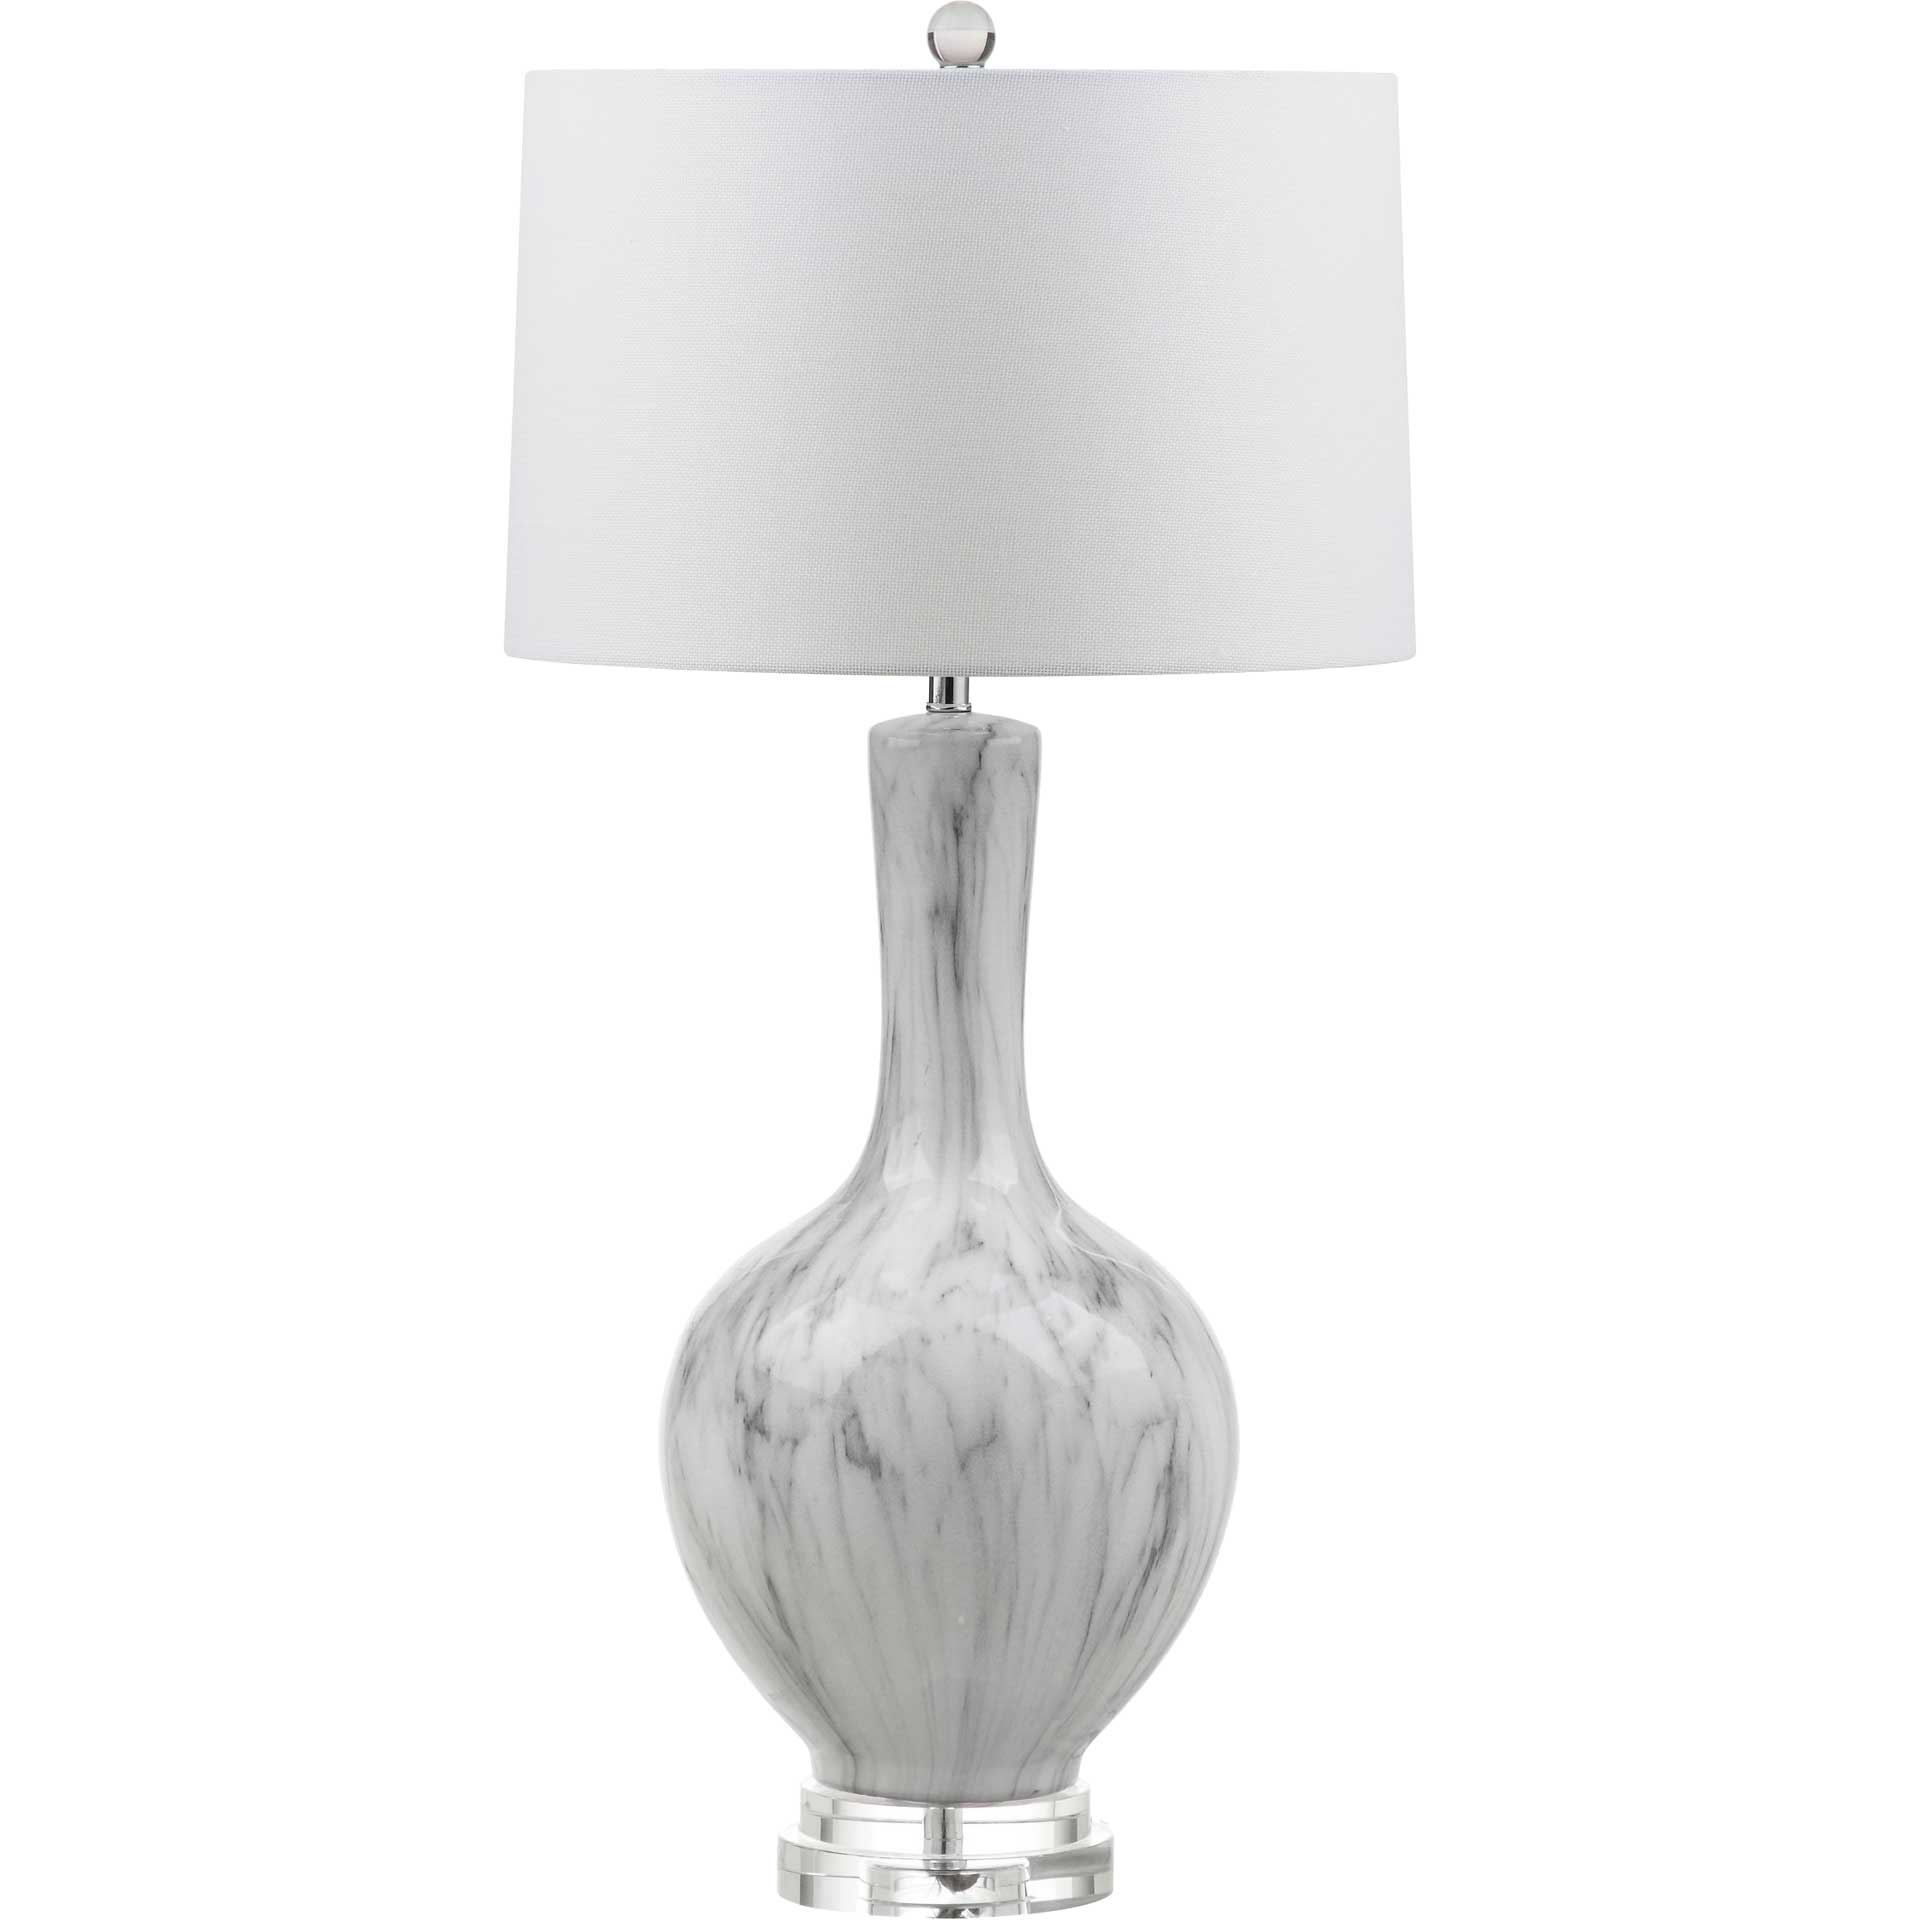 Greenlee Table Lamp White/Gray (Set of 2)